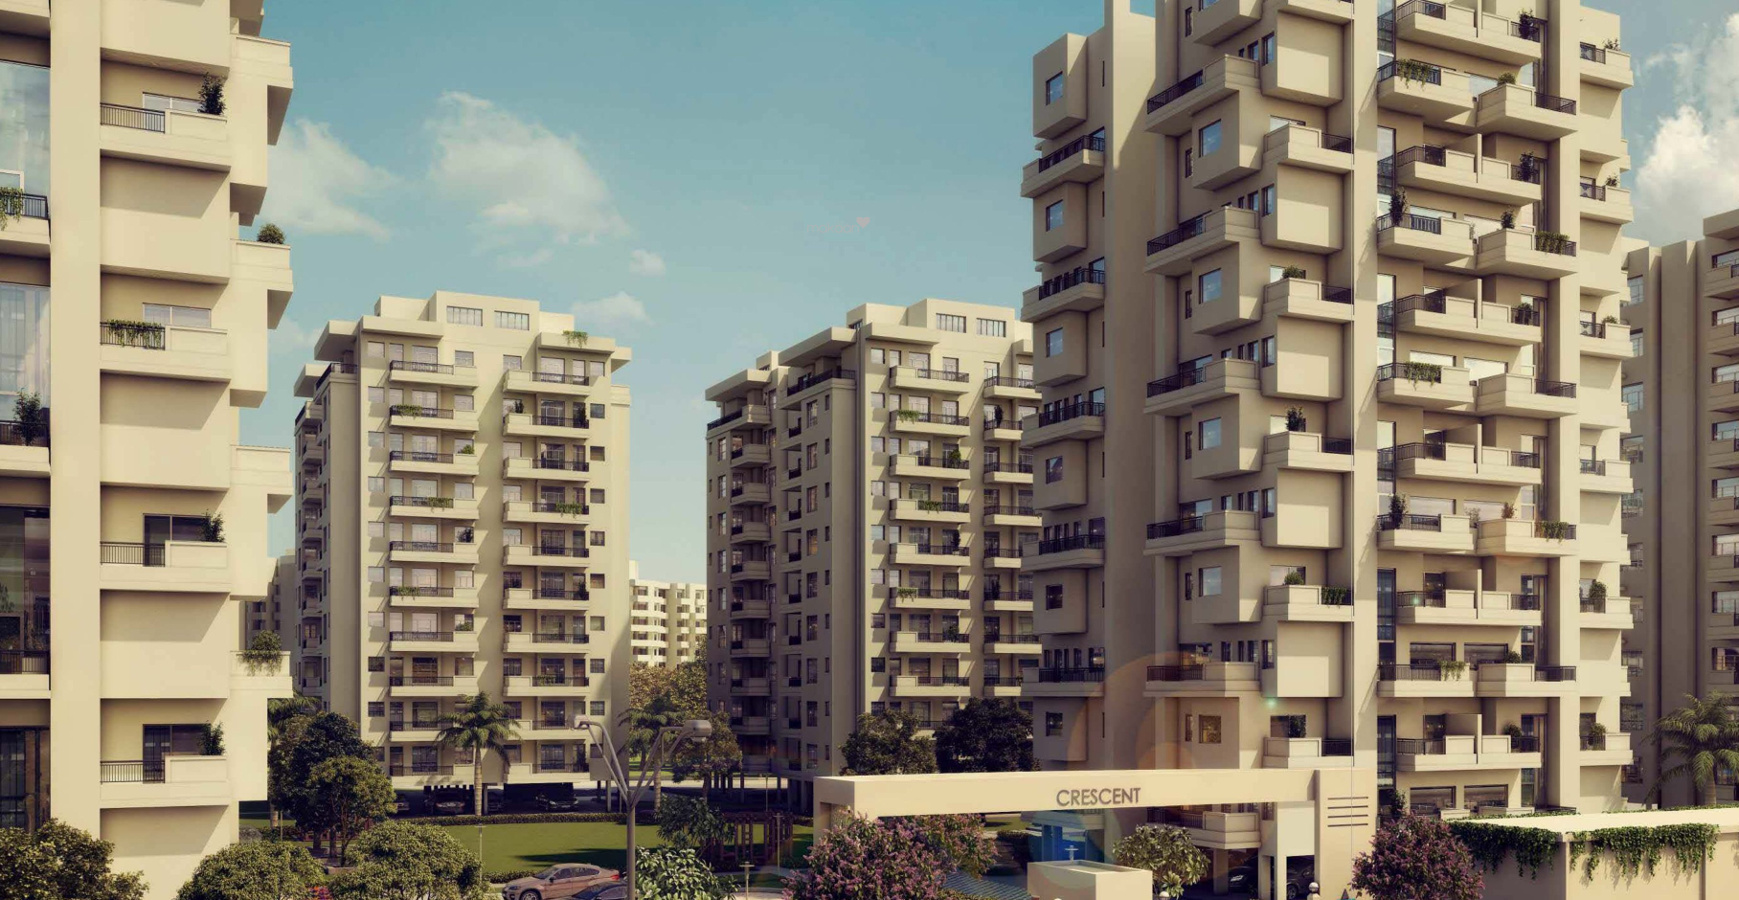 1690 sq ft 3BHK 3BHK+2T (1,690 sq ft) + Pooja Room Property By Nirmaaninfratech In Crescent, Zirakpur